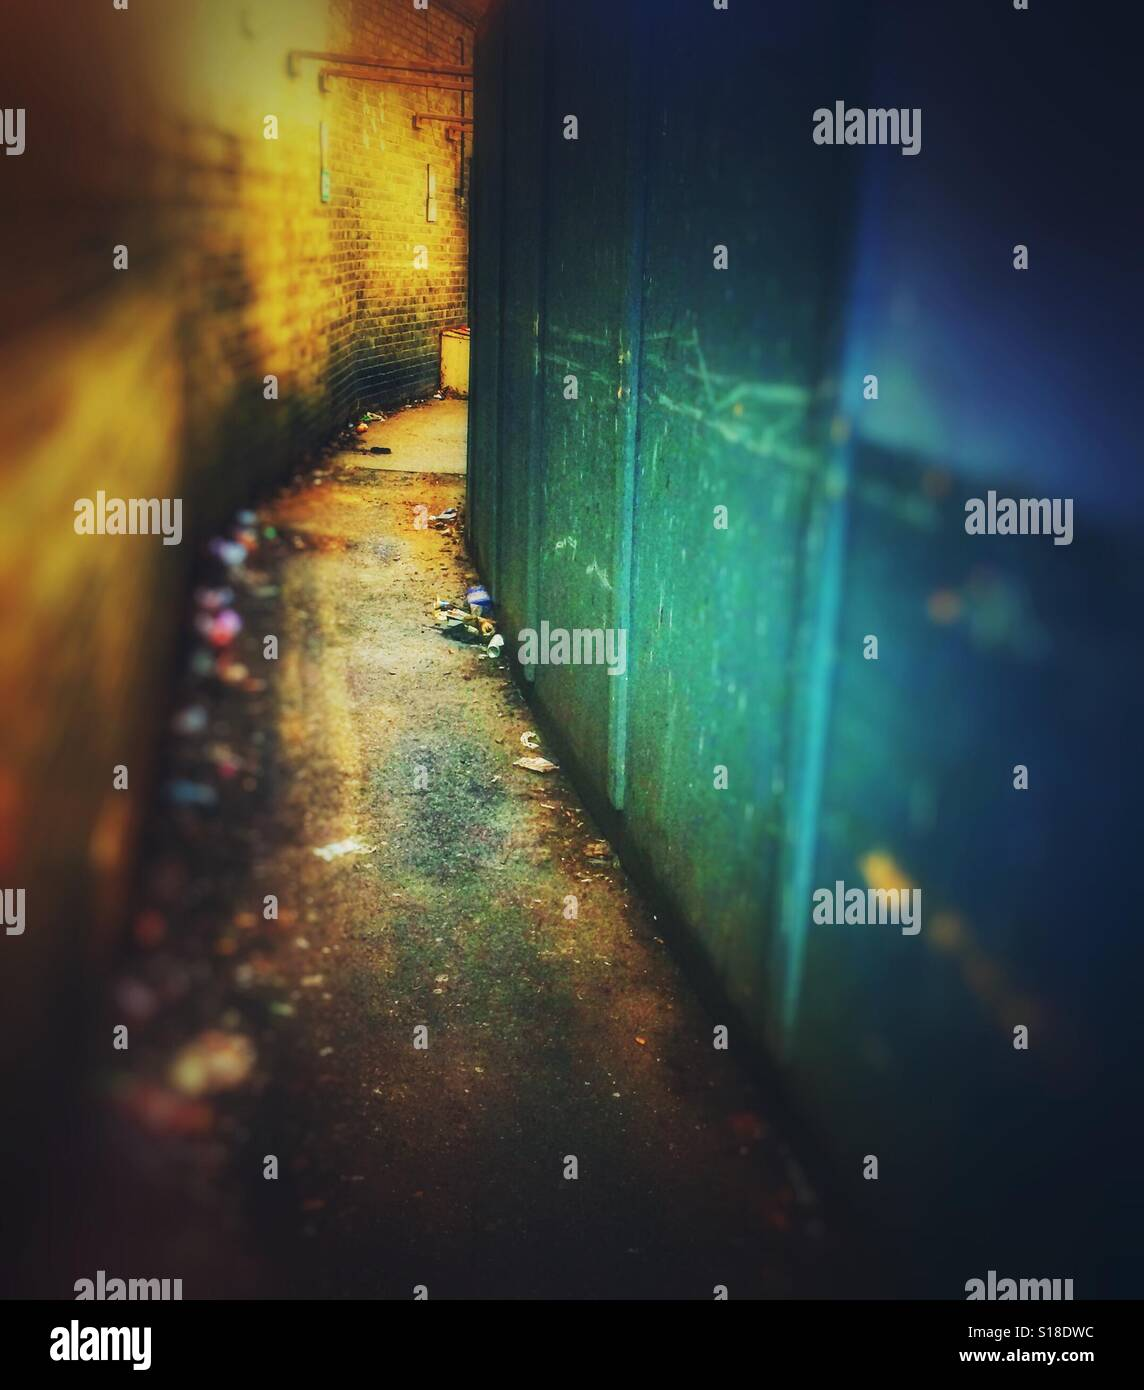 A back street alley - Stock Image